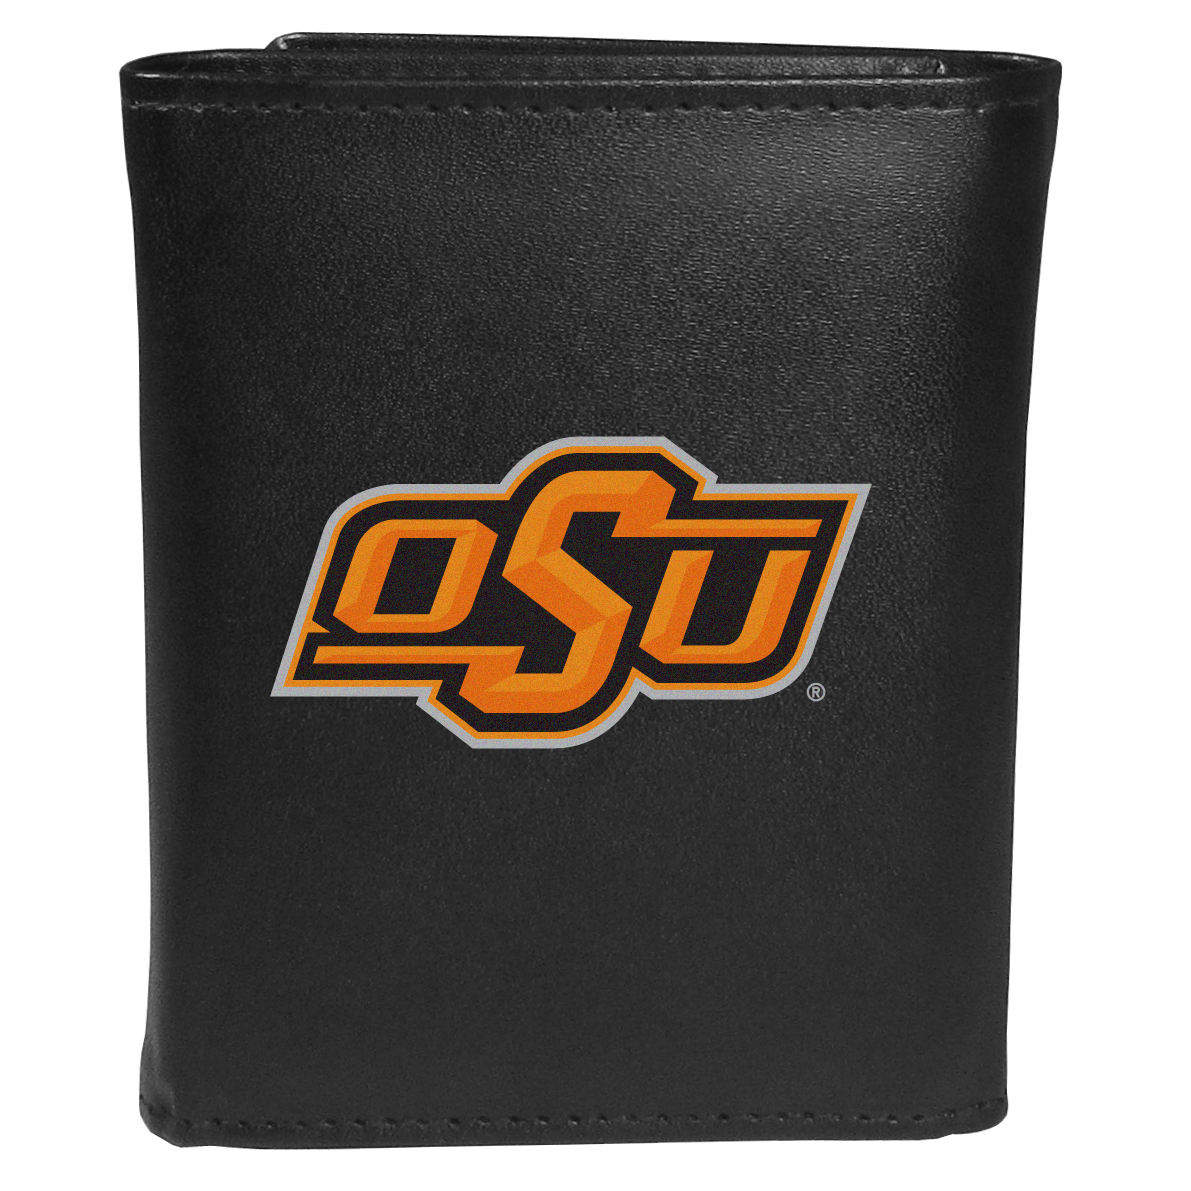 Oklahoma St. Cowboys Tri-fold Wallet Large Logo - Sports fans do not have to sacrifice style with this classic tri-fold wallet that sports theOklahoma St. Cowboys?extra large logo. This men's fashion accessory has a leather grain look and expert craftmanship for a quality wallet at a great price. The wallet features inner credit card slots, windowed ID slot and a large billfold pocket. The front of the wallet features an extra large printed team logo.